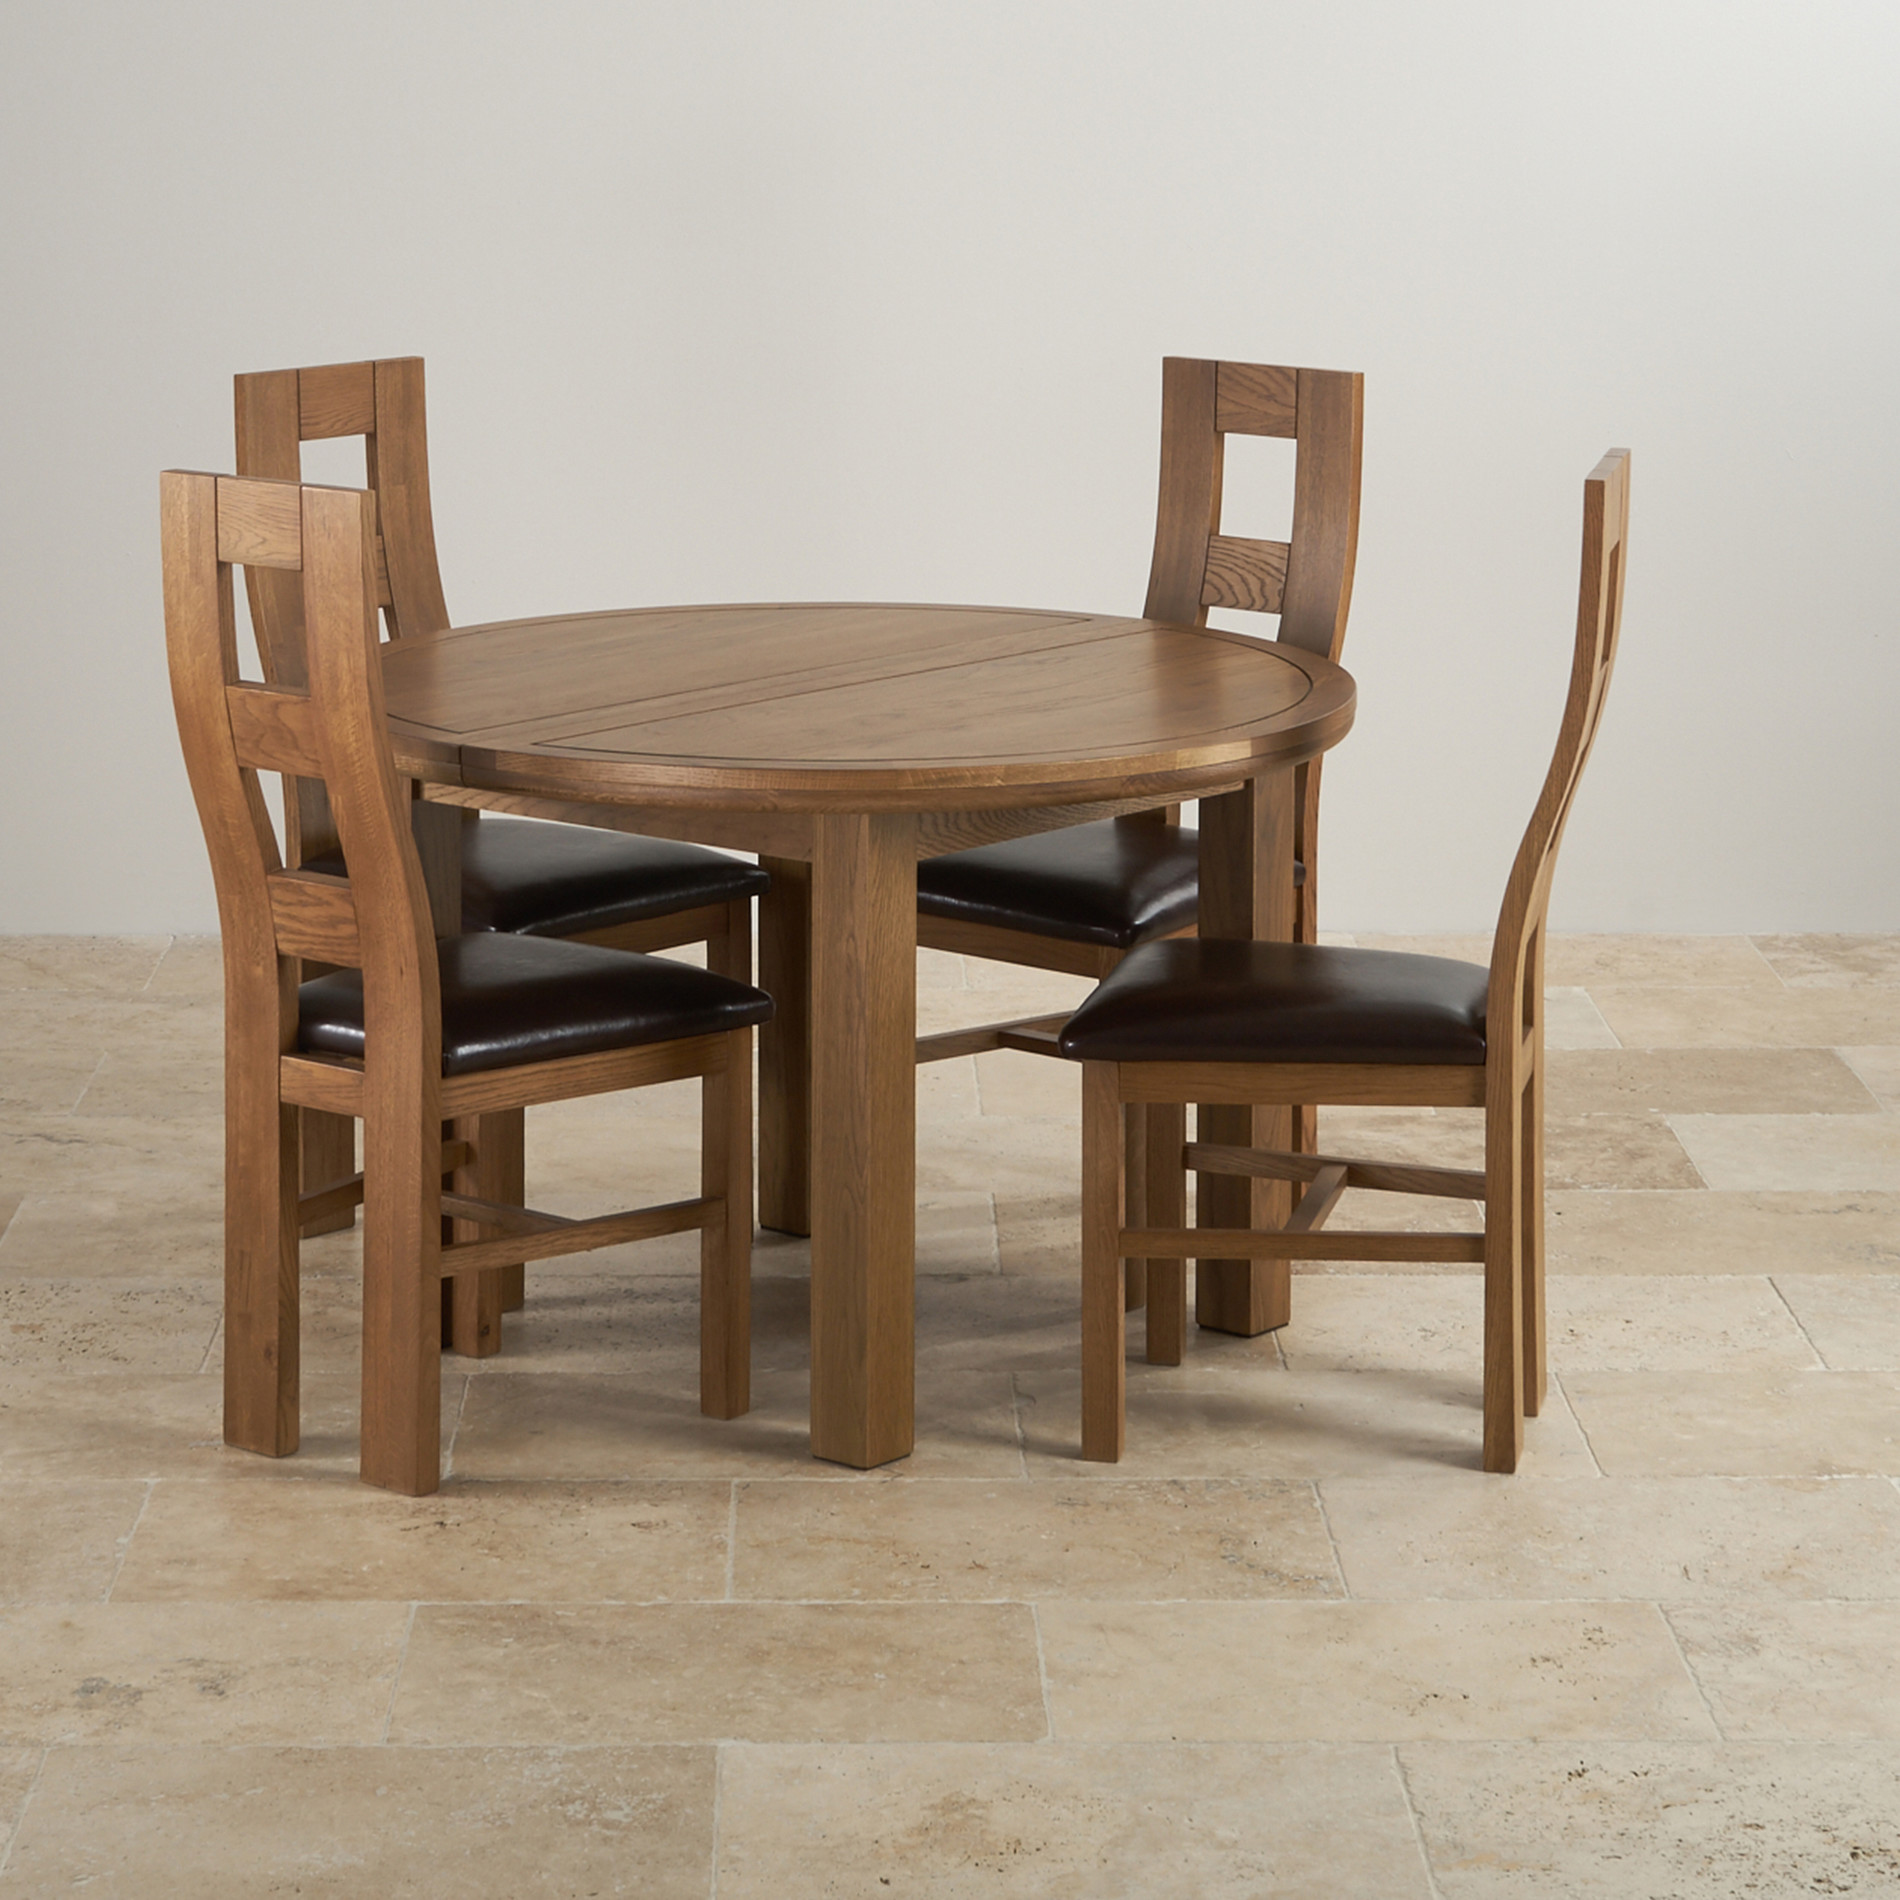 Knightsbridge Round Extending Dining Table 4 Leather Chairs